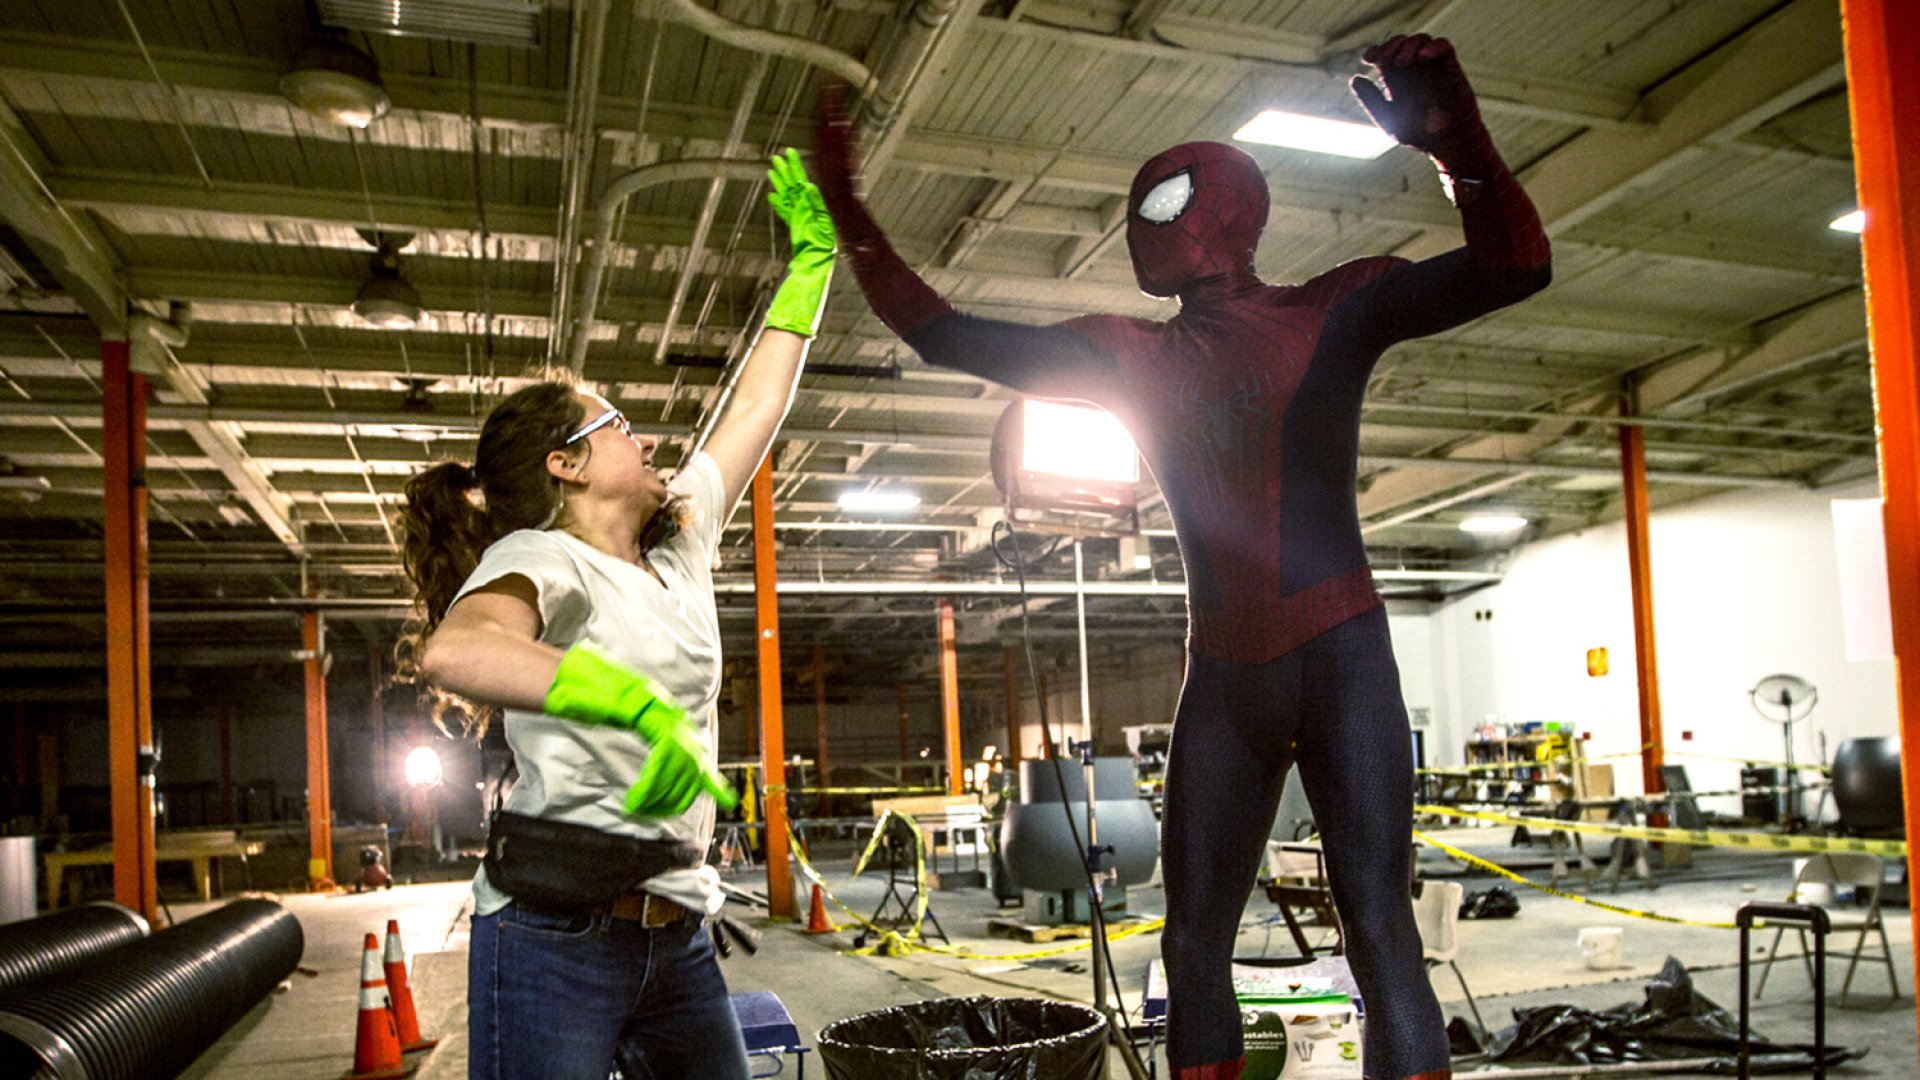 Earth Angel founder Emellie O'Brien on the set of <em>The Amazing Spider-Man 2</em>.